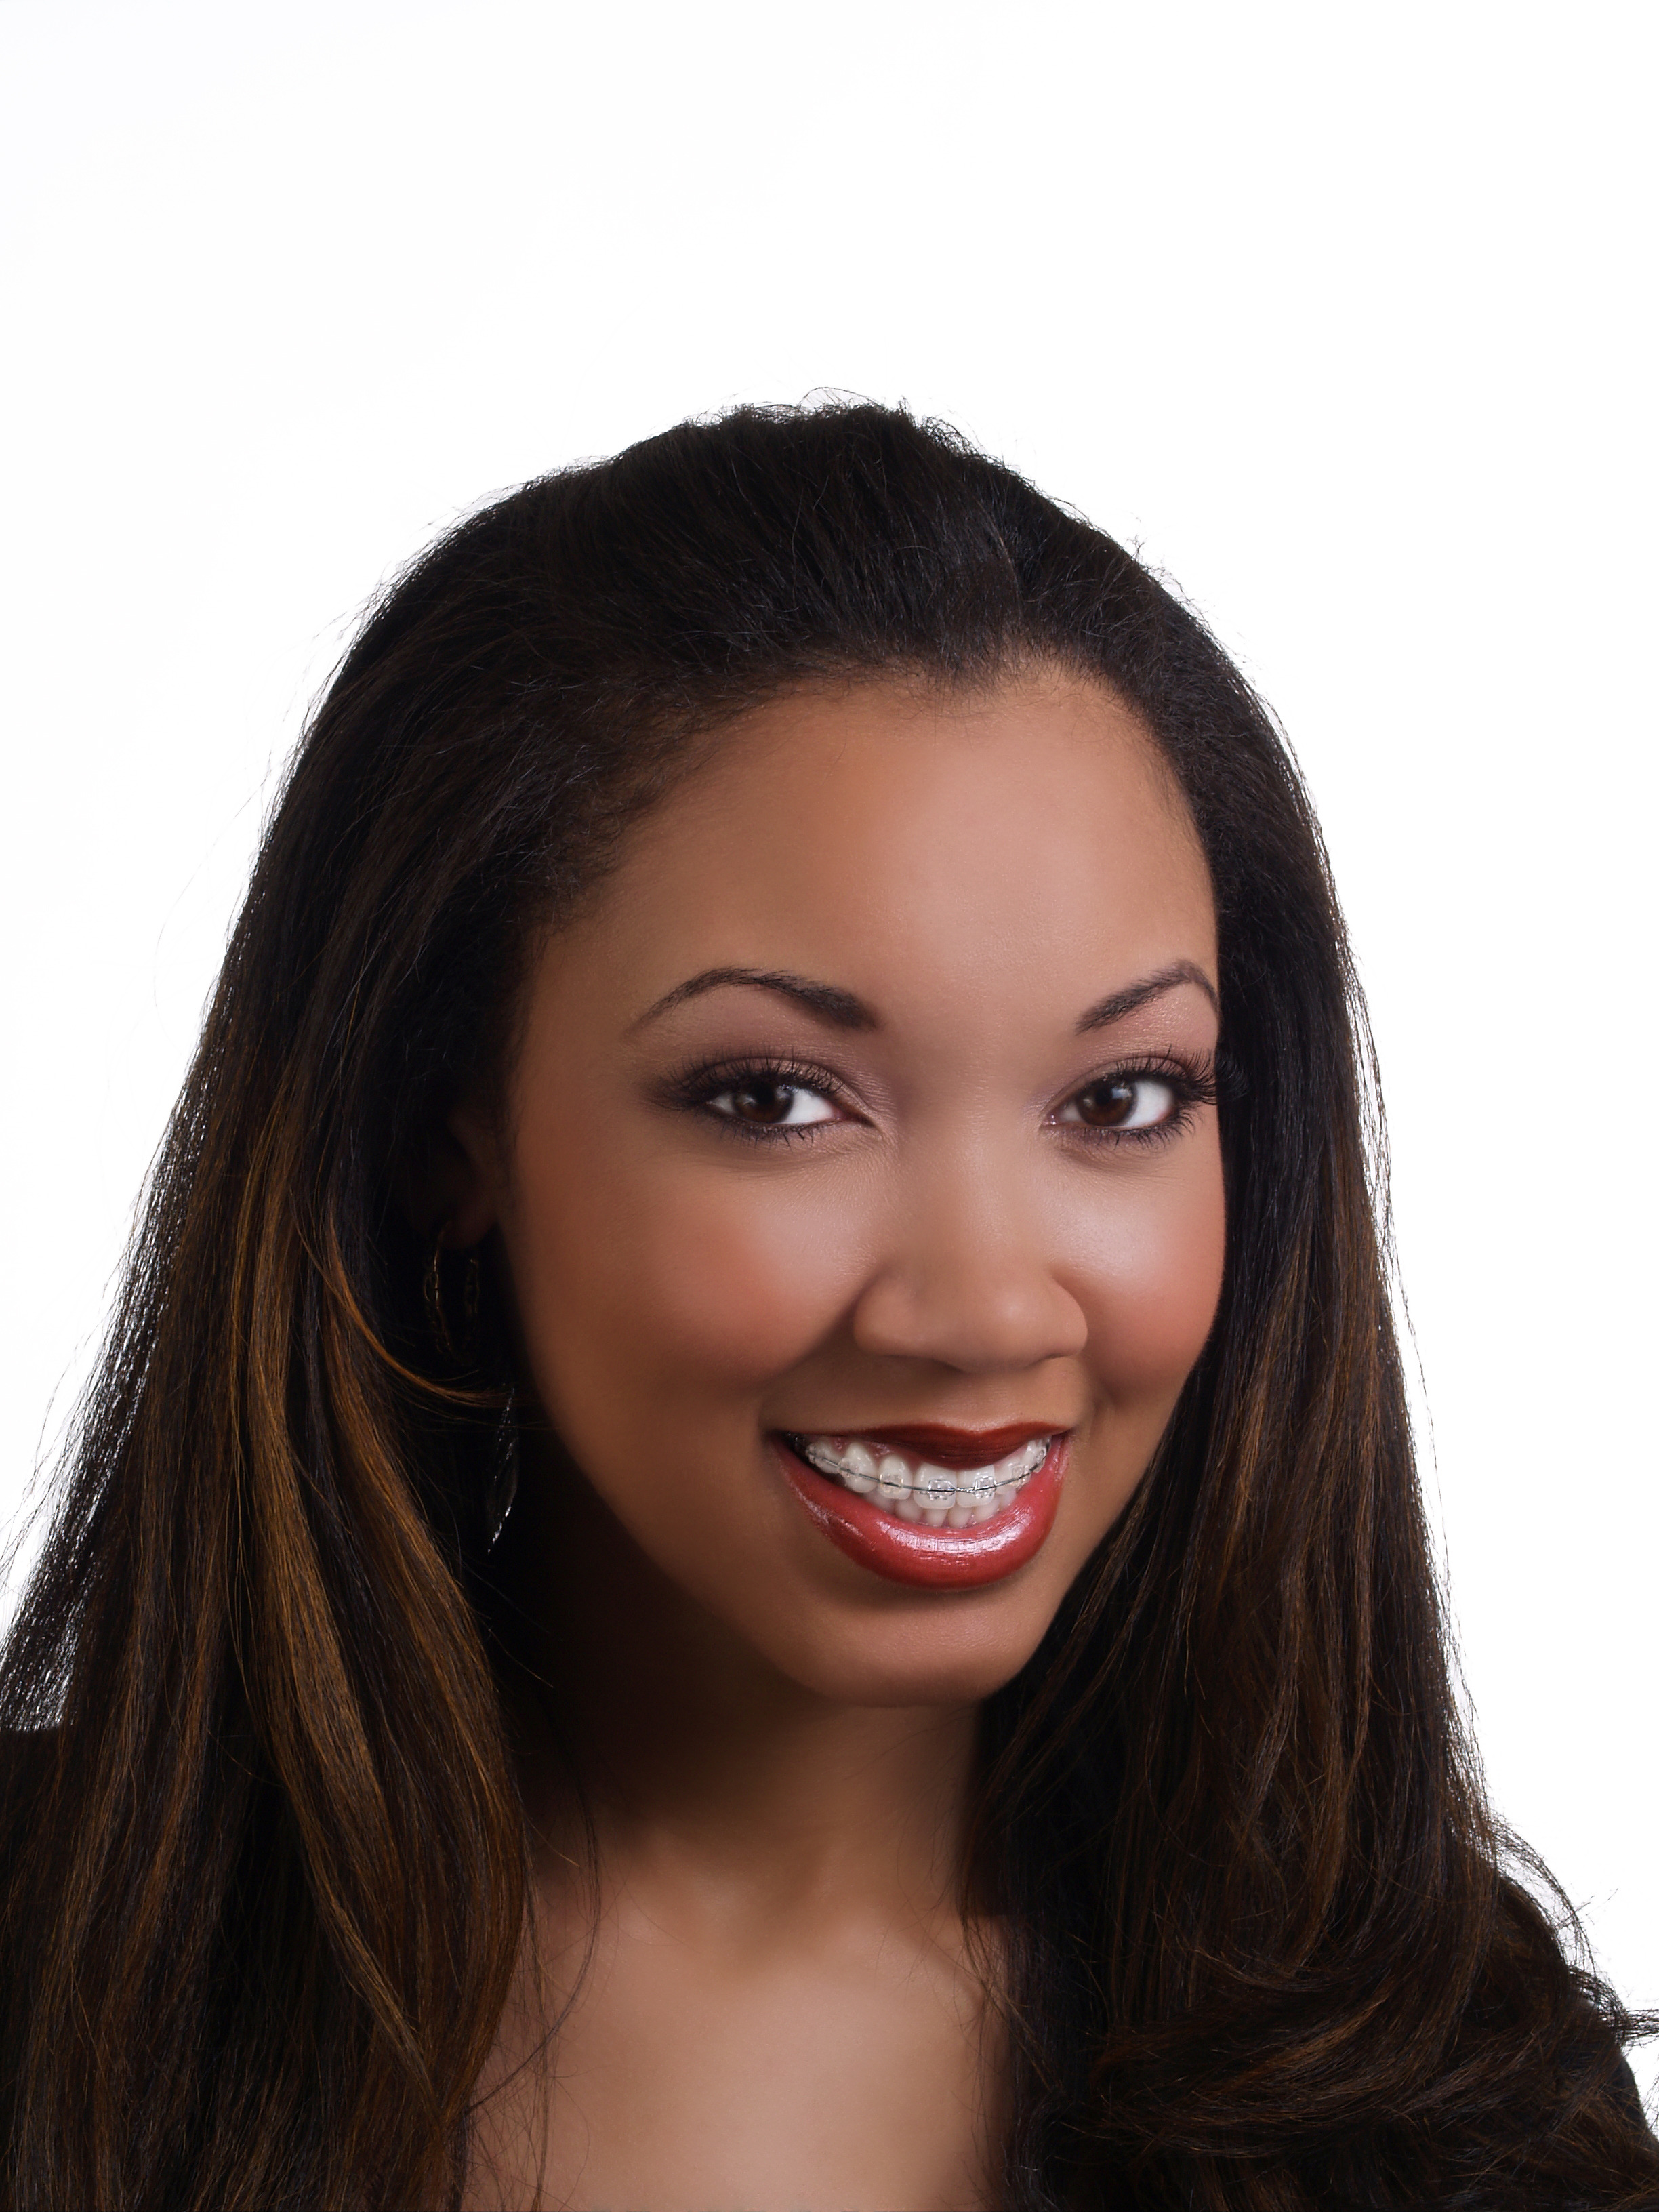 Portrait young black woman orthodontist braces